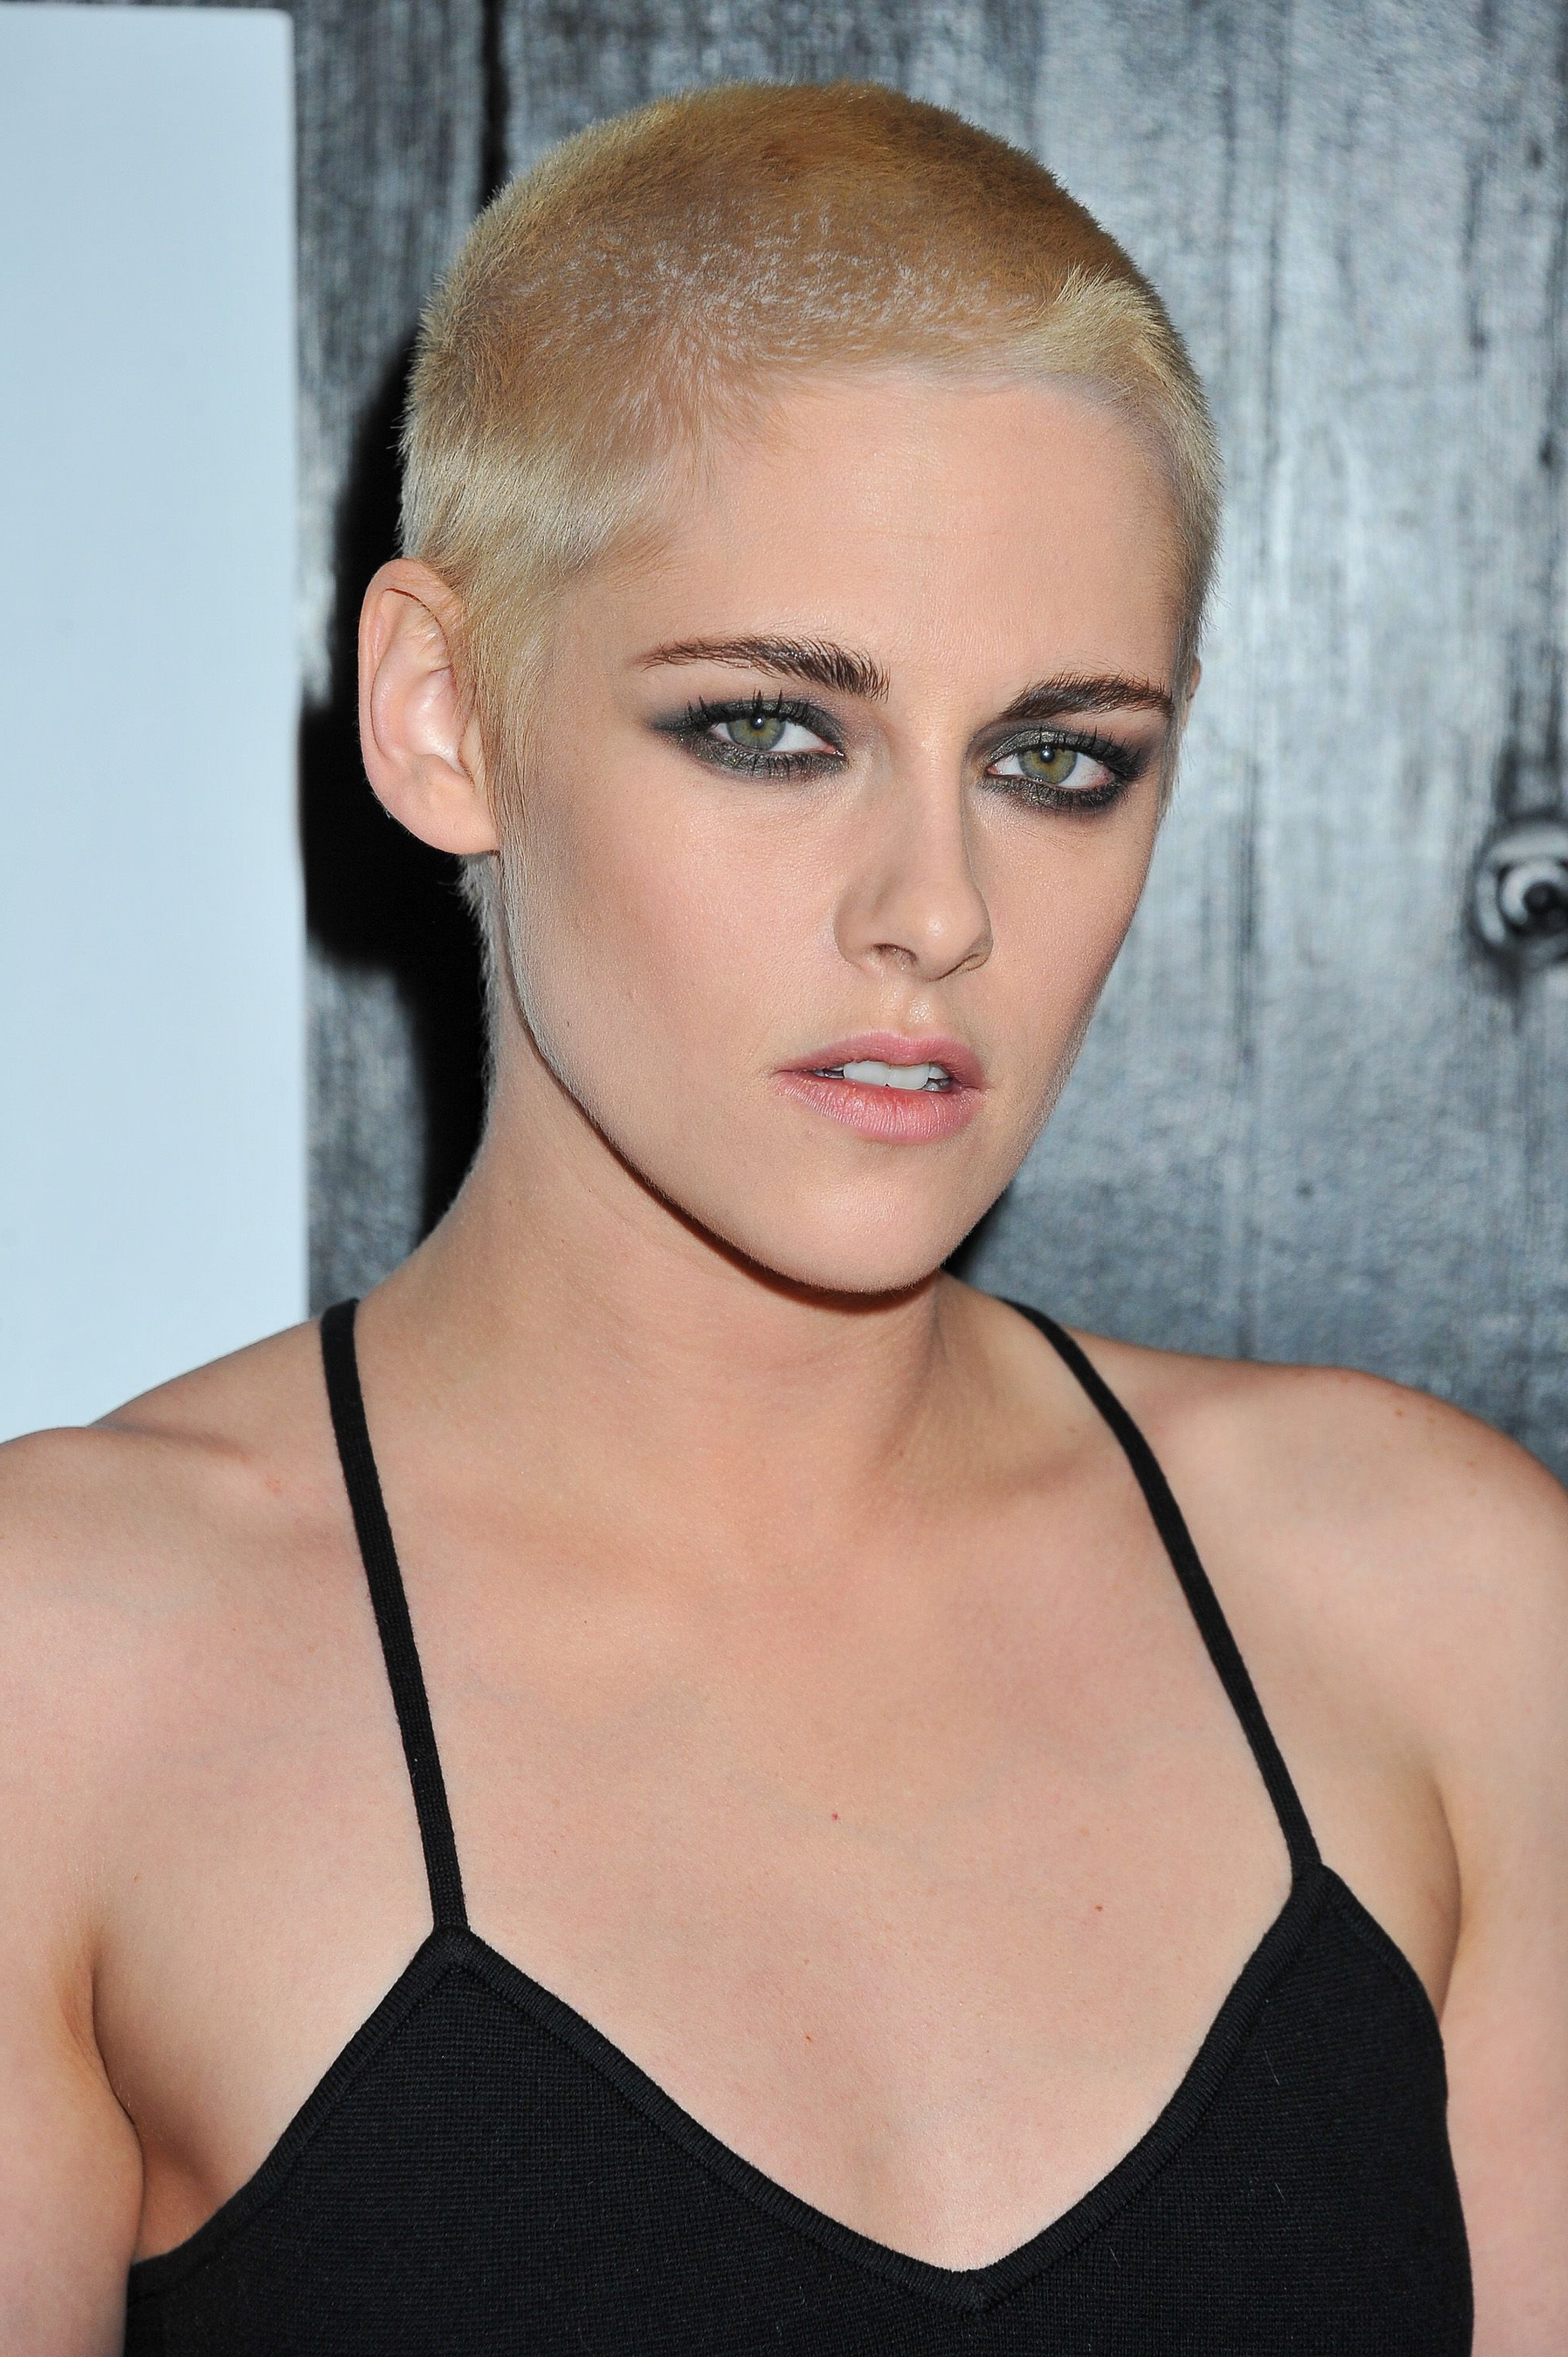 65 Best Short Hairstyles, Haircuts, And Short Hair Ideas For 2018 Intended For Short Haircuts For Celebrities (Gallery 10 of 25)